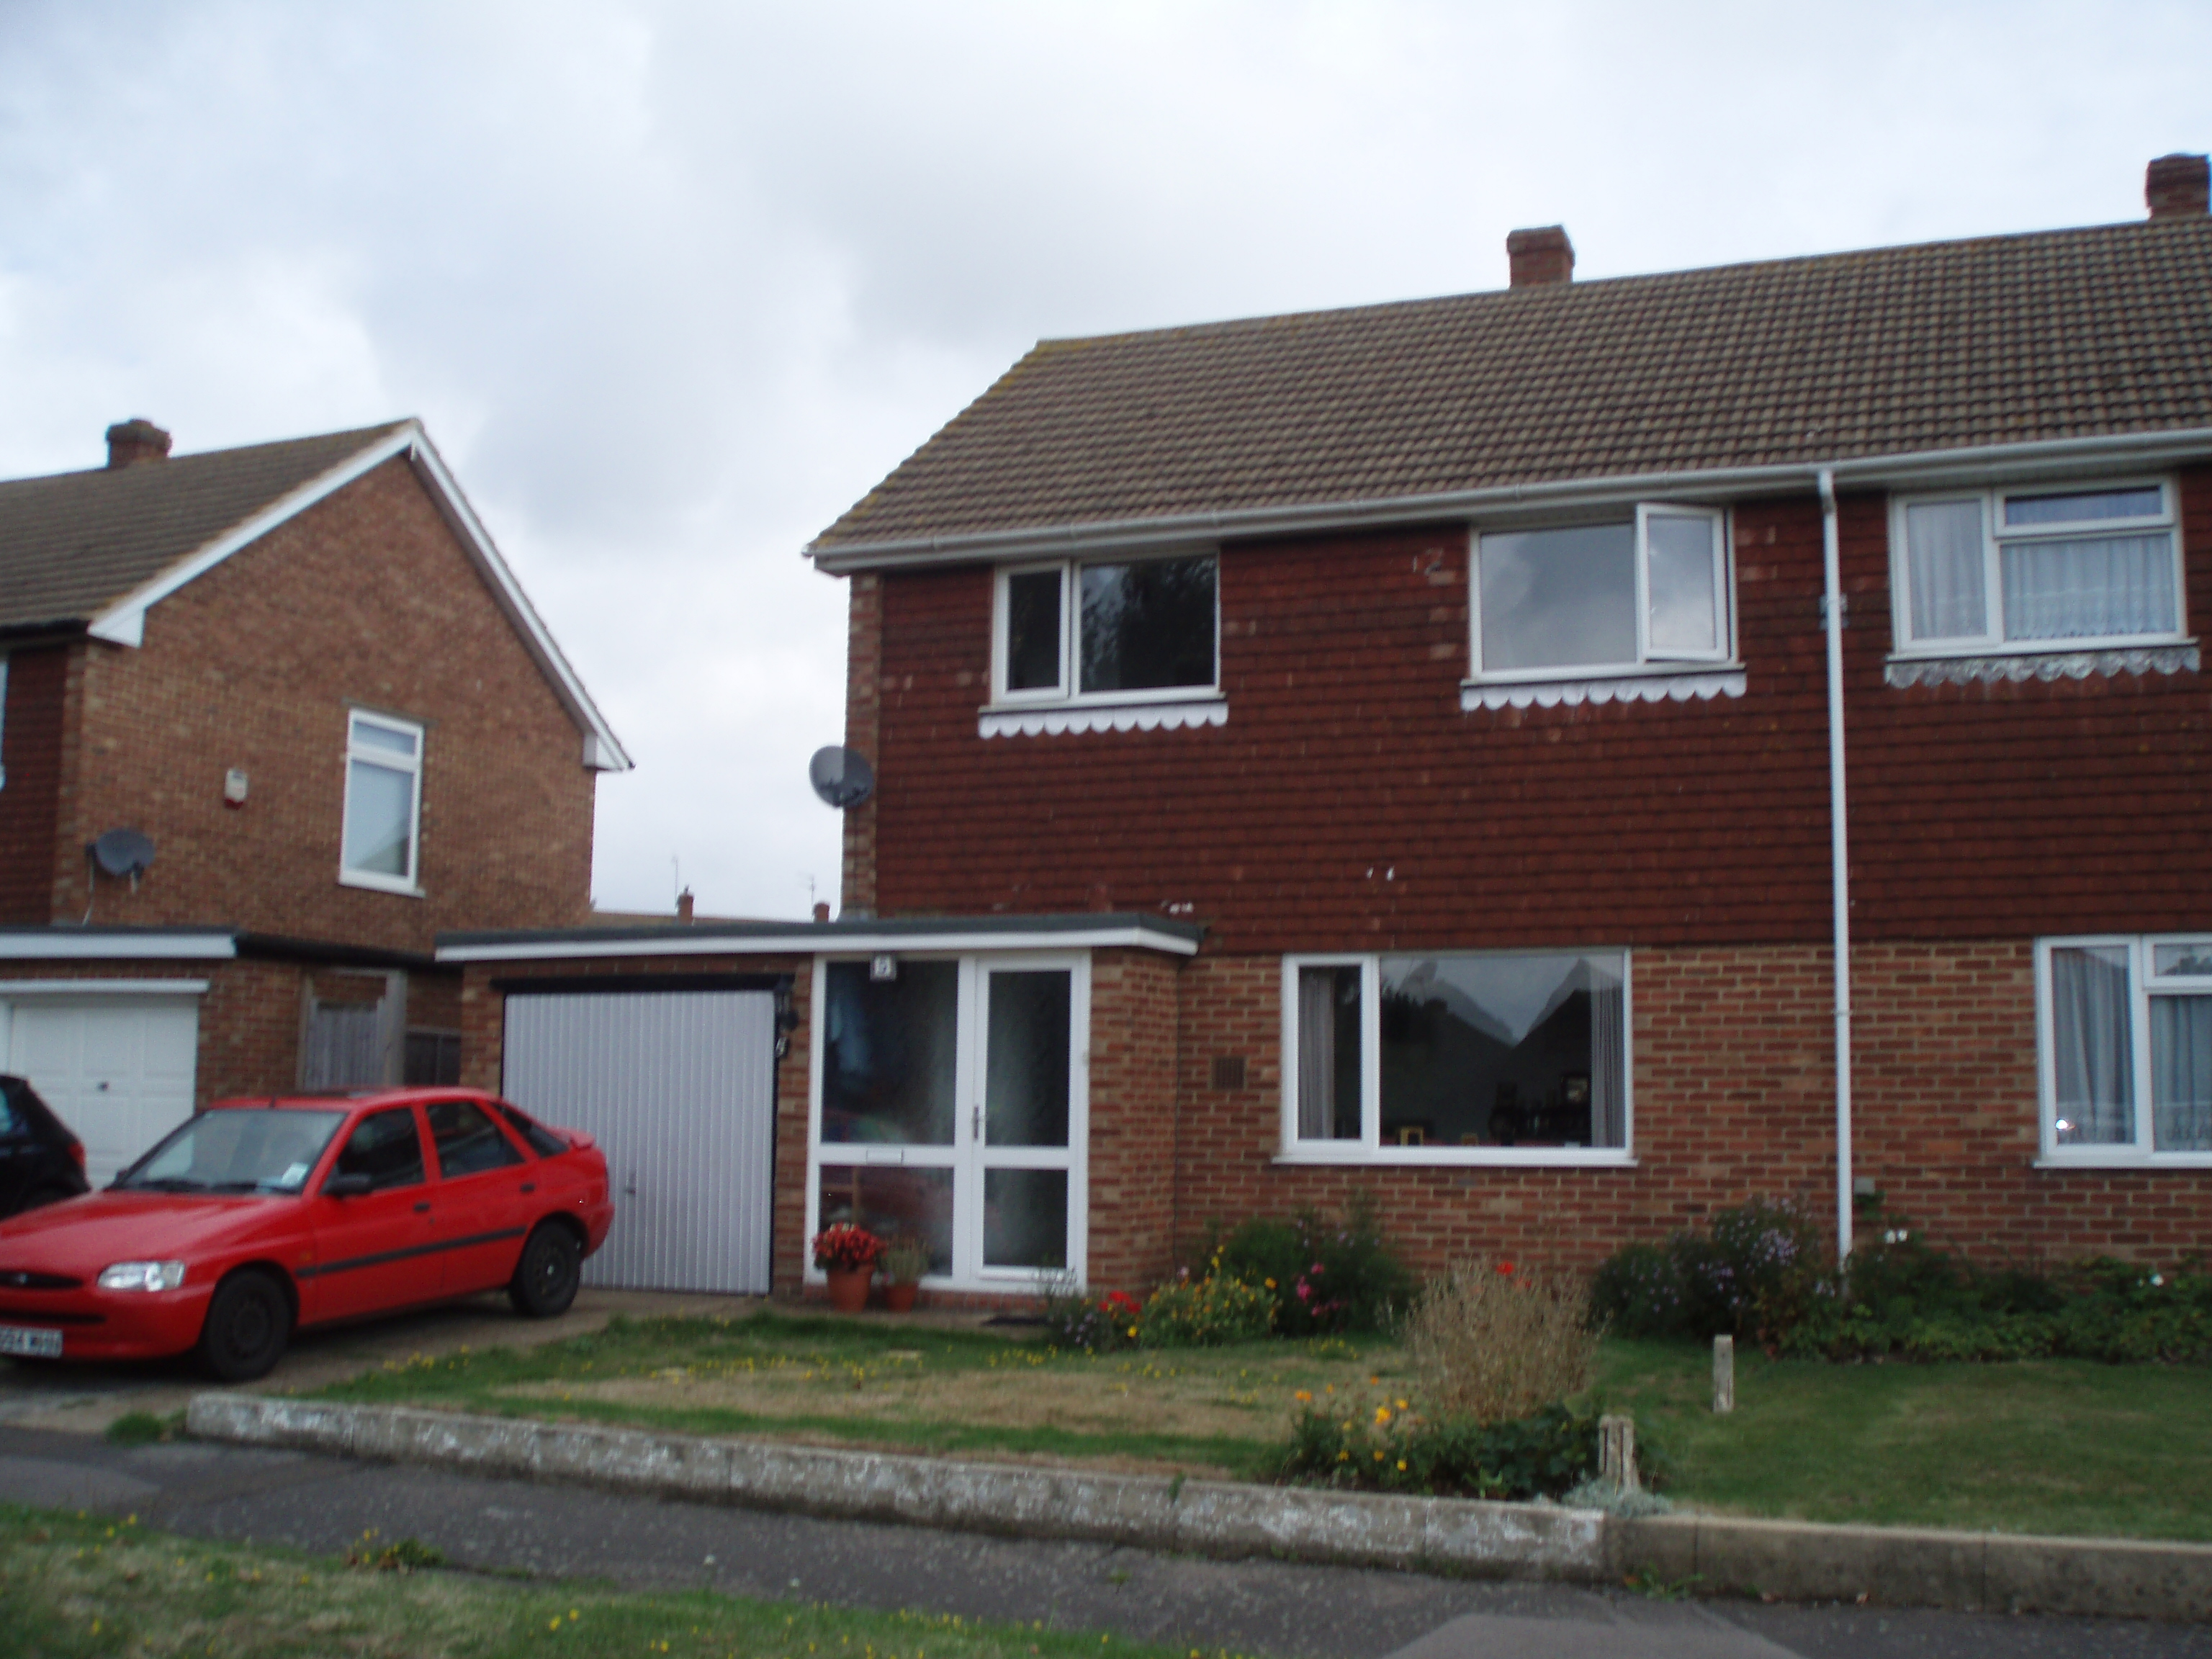 Semi Detached House file:semi-detached house with ford escort car - wikimedia commons